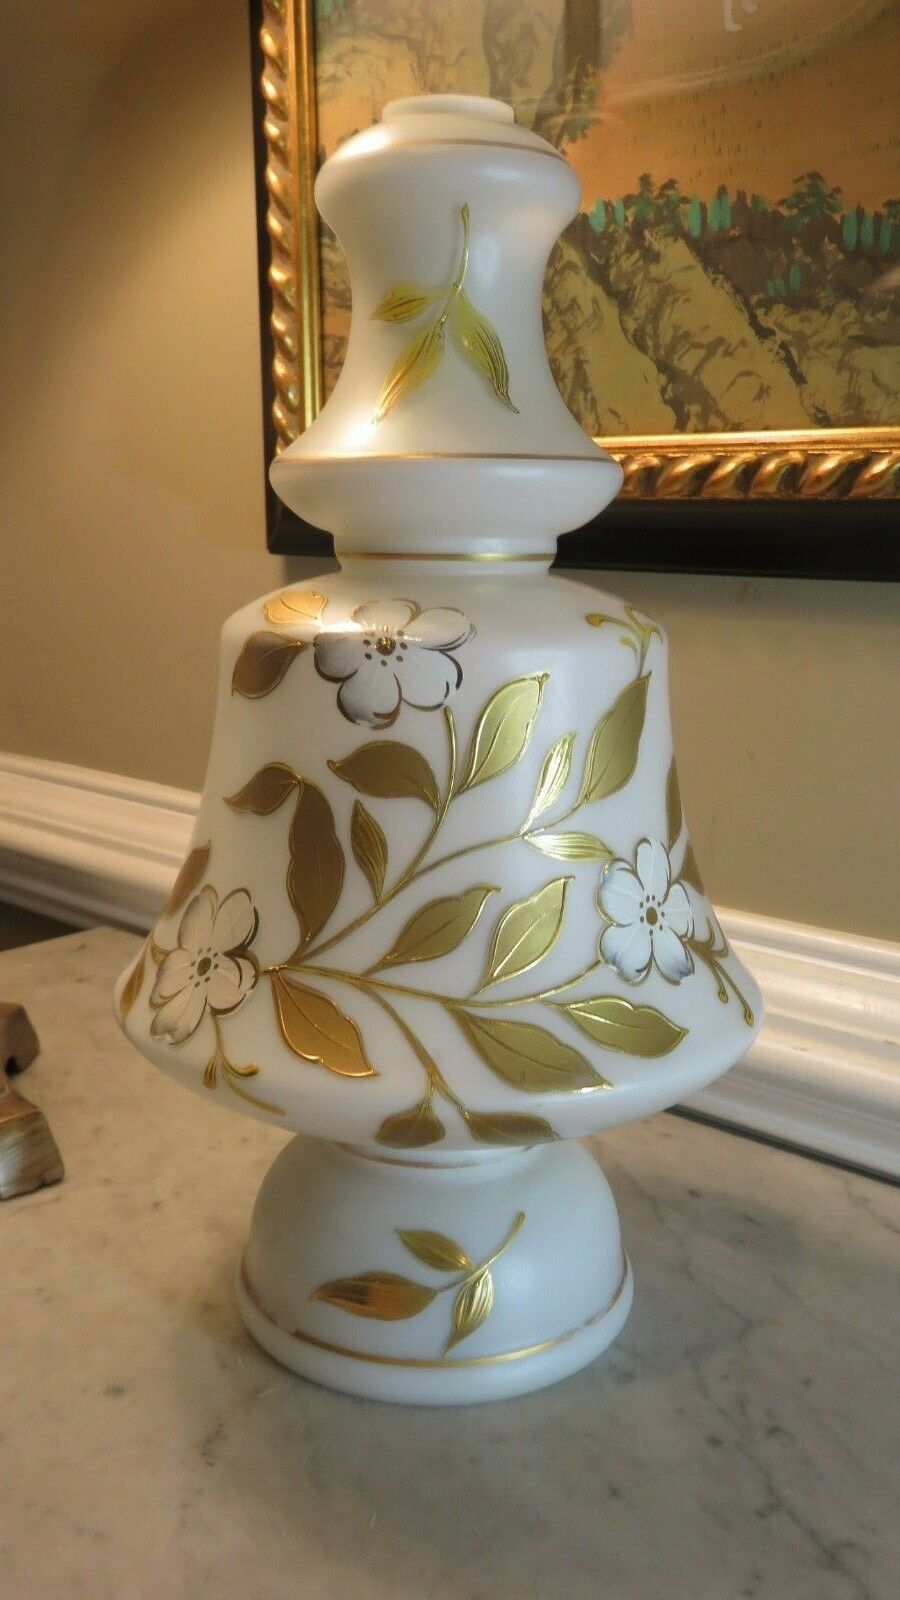 Details About Antique Hand Painted Lamp Base Glass Only Gold W White Dogwood Flowers 14 In 2020 White Lamp Base Ceramic Lamp Base Painting Lamps